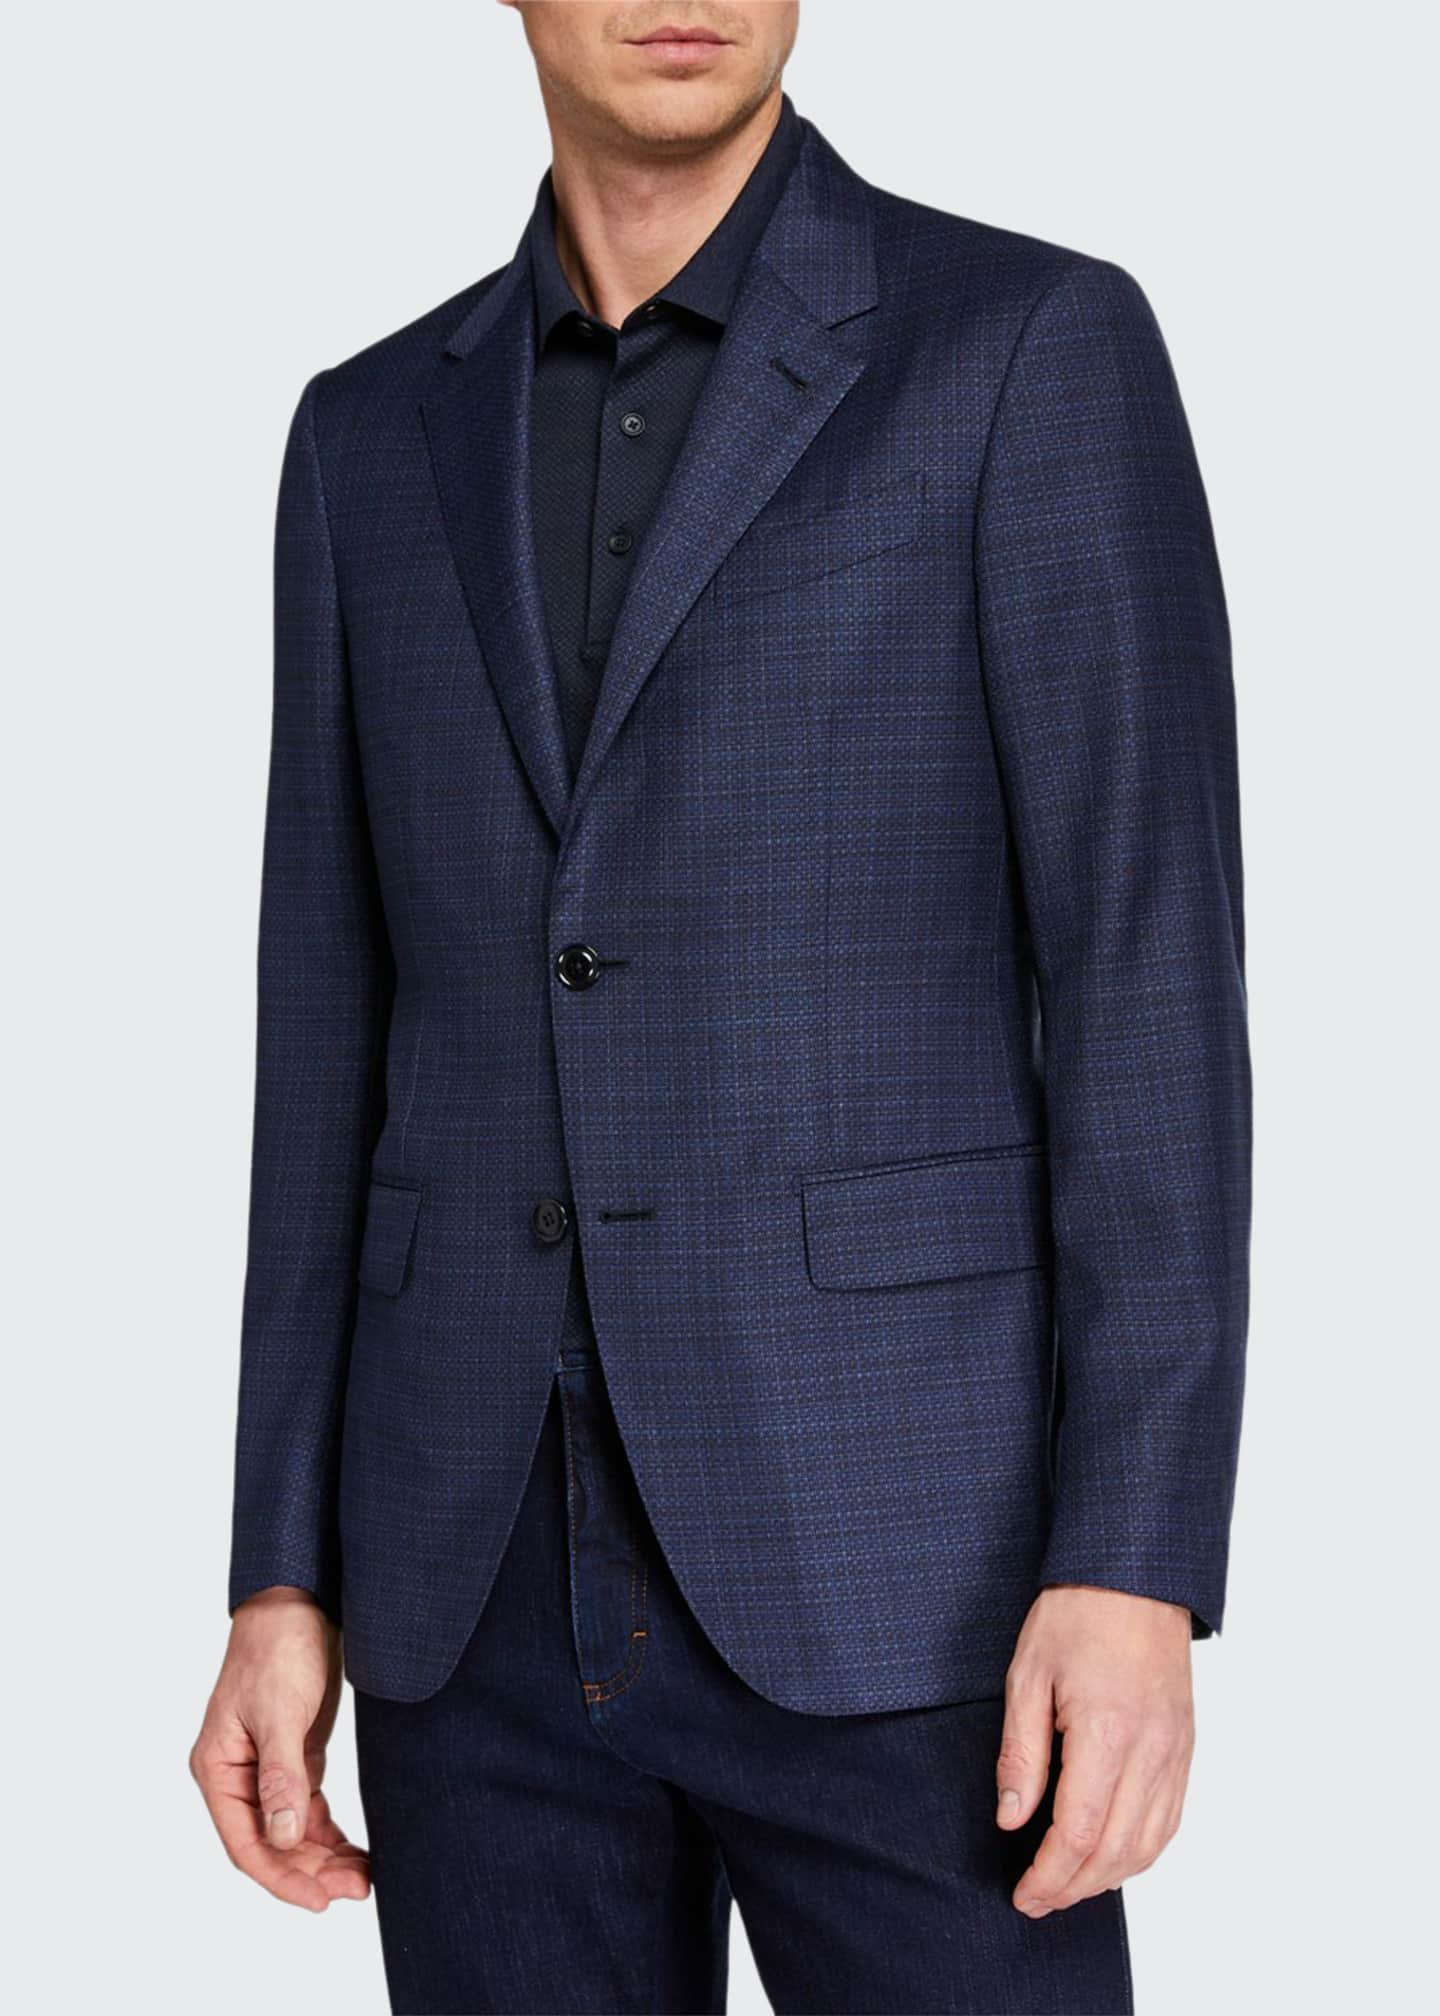 Ermenegildo Zegna Men's ACHILLFARM High-Textured Blazer